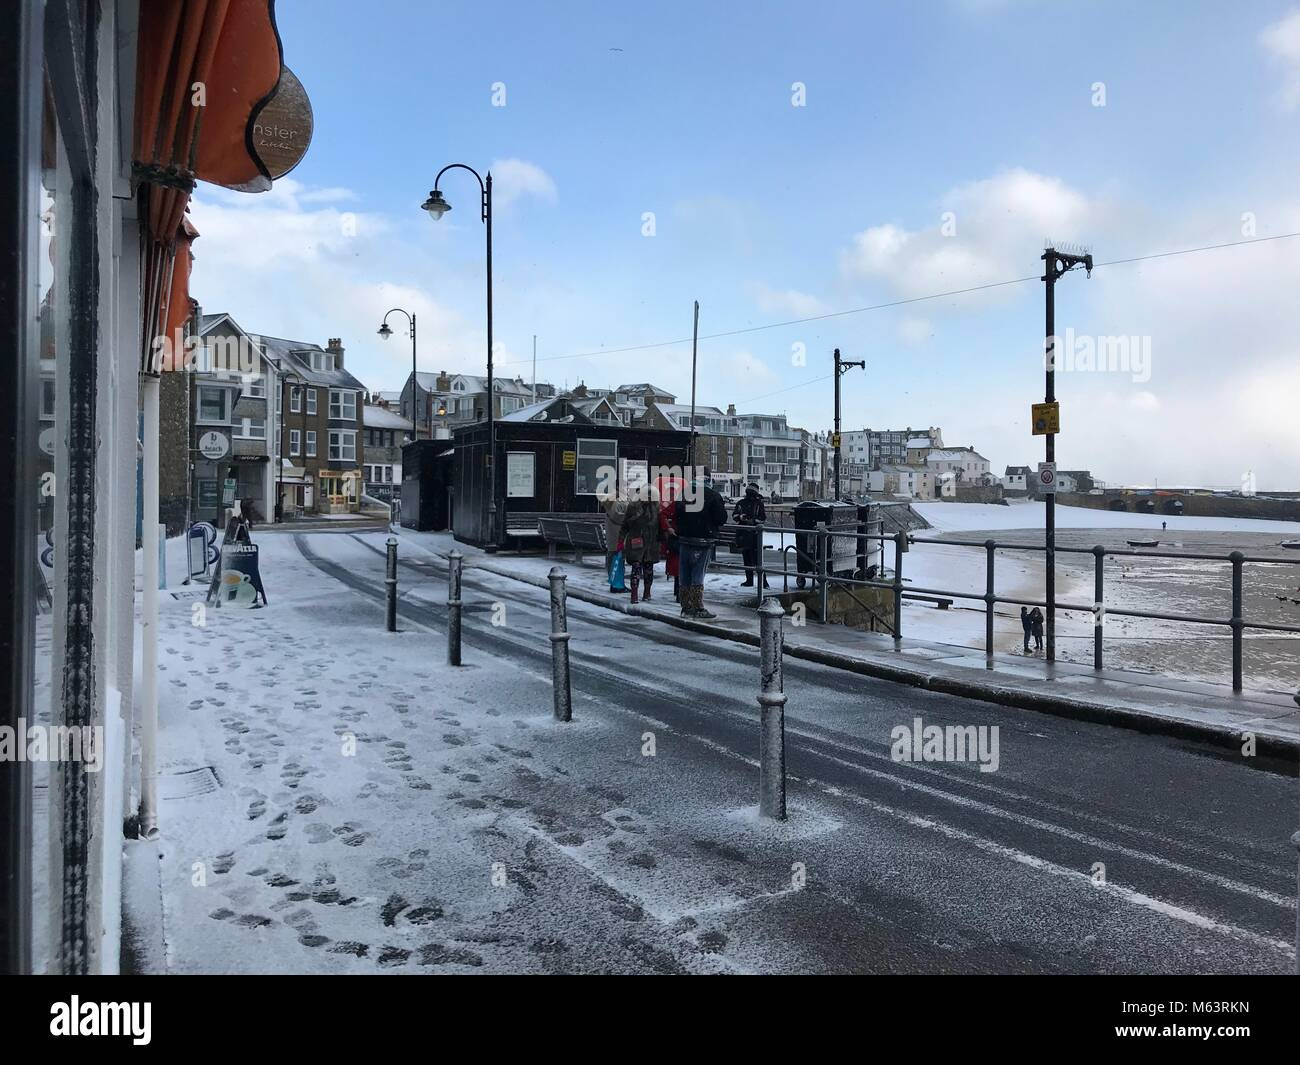 Cornwall, UK. 28th February, 2018. People walk across the harbour front of St Ives, Cornwall in snow storm. Credit: - Stock Image